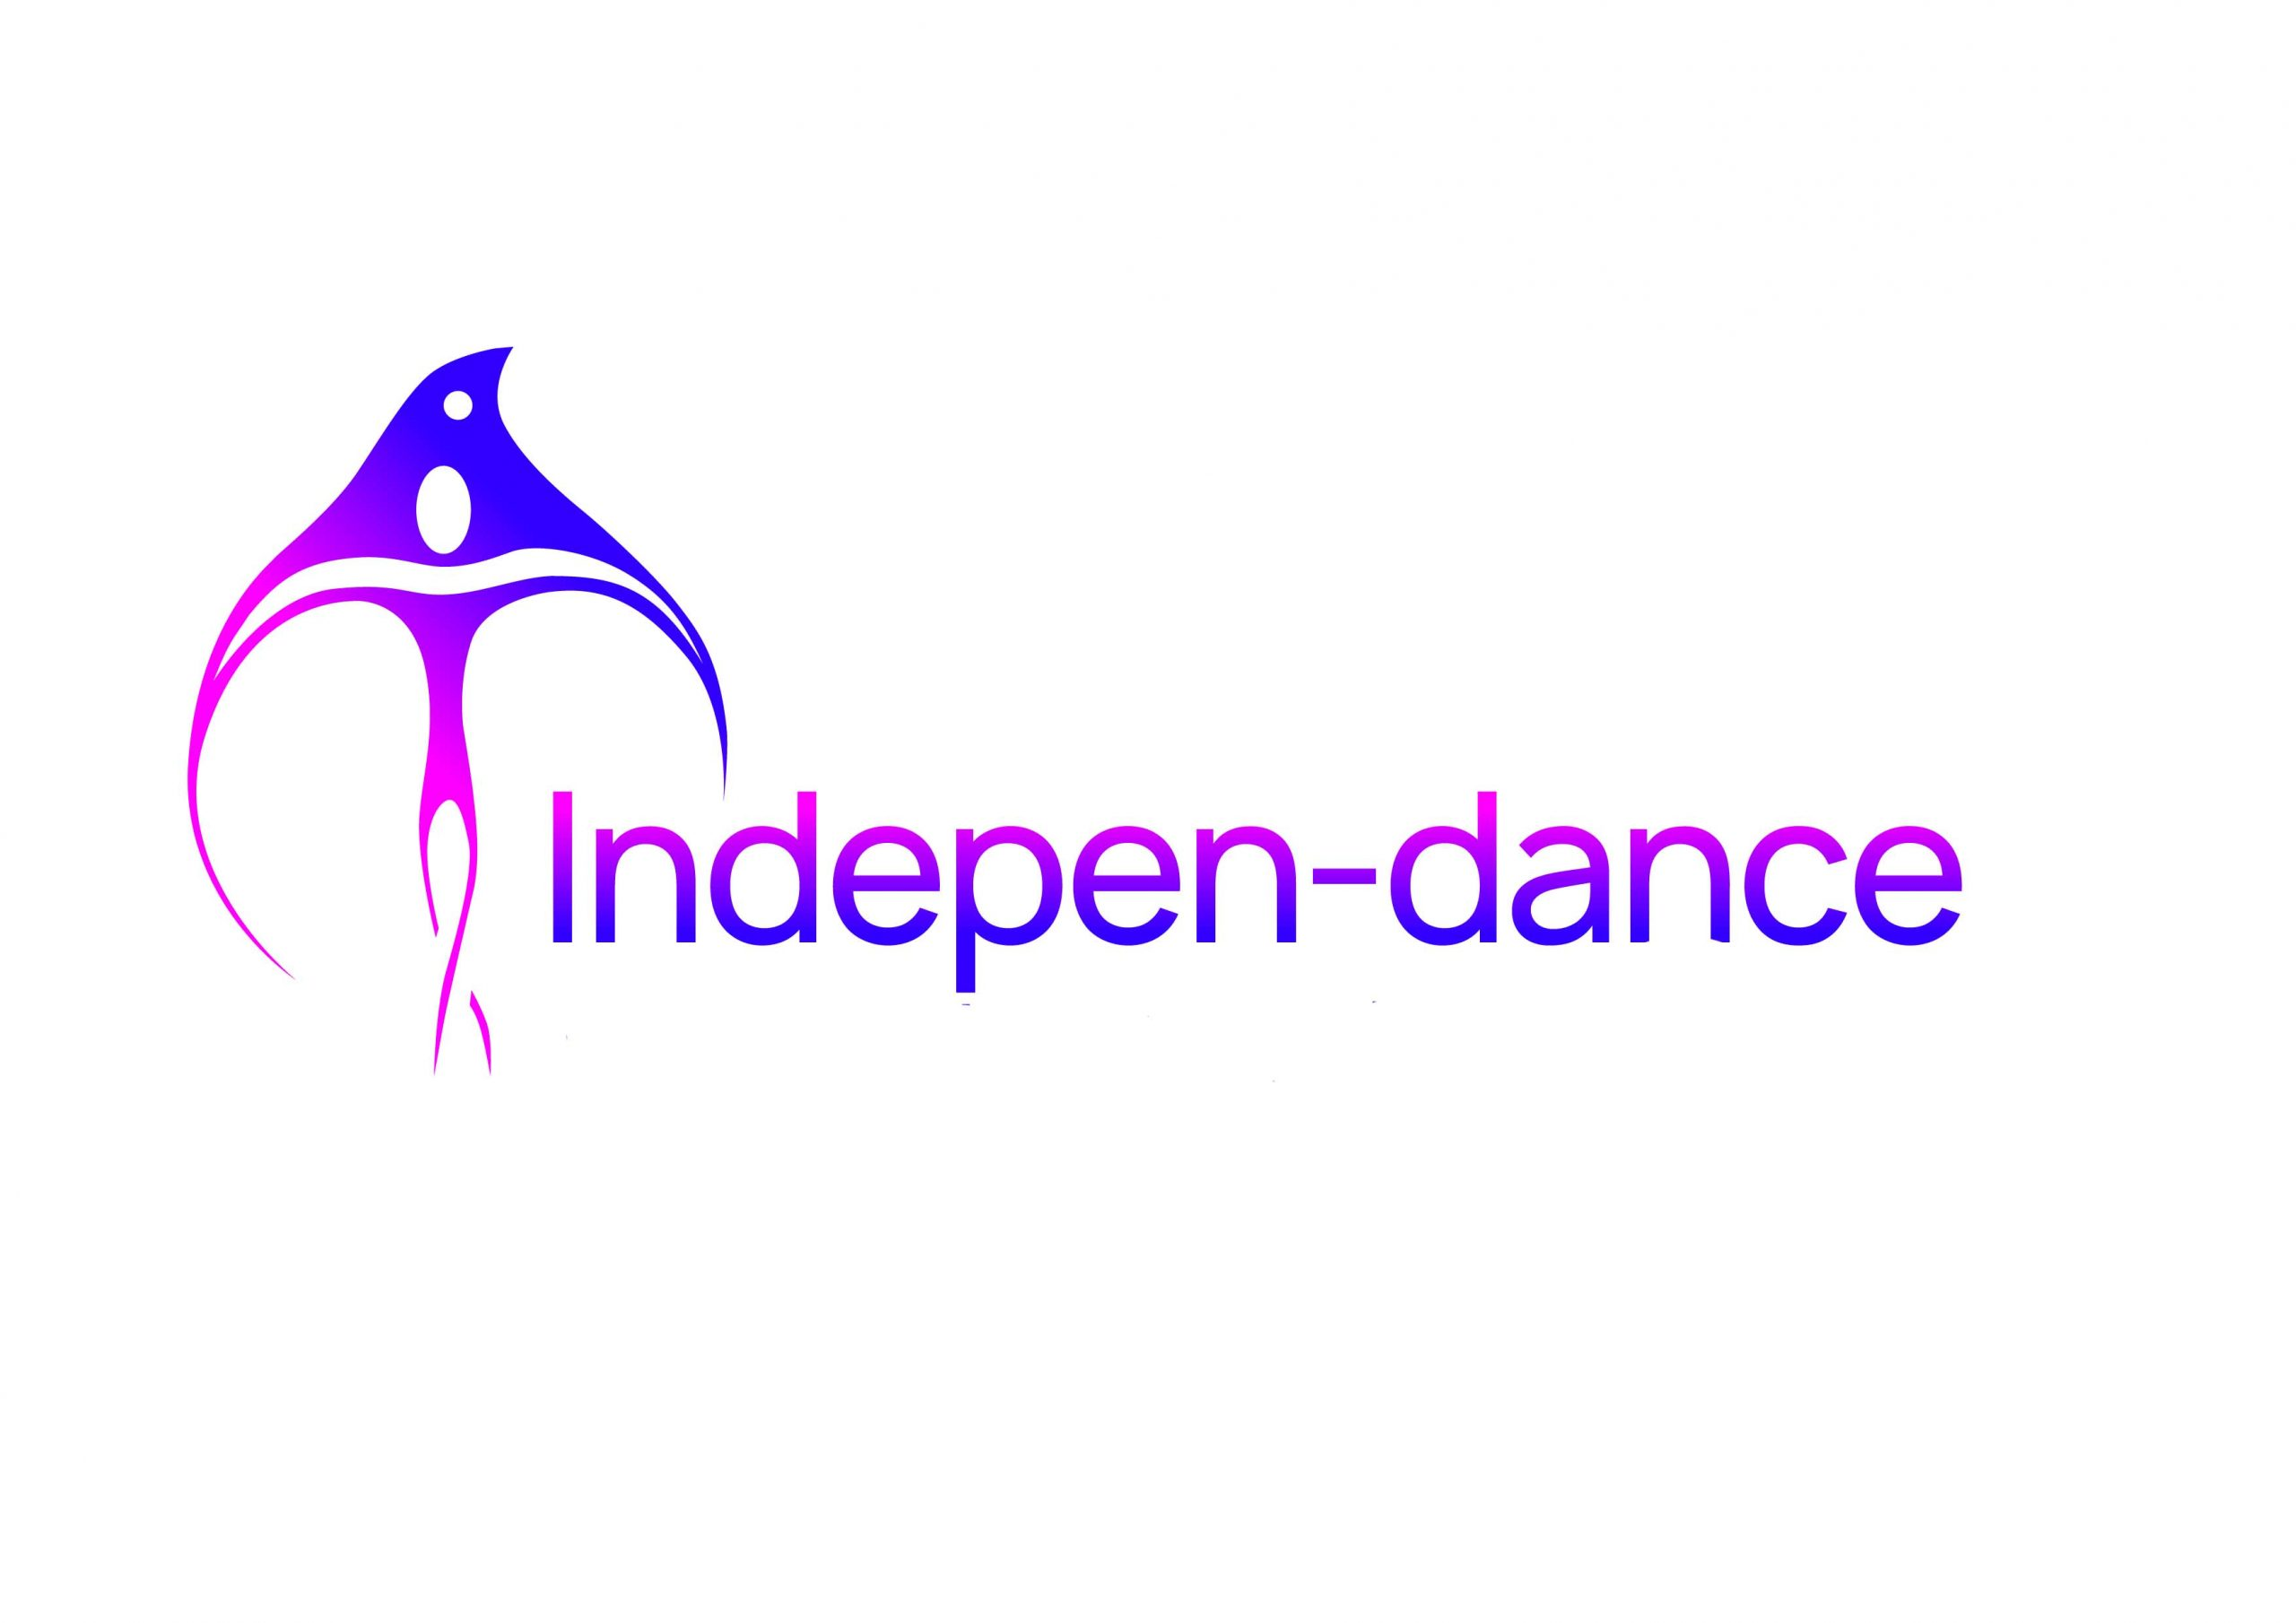 Indepen - dance logo in colours pink and purple.